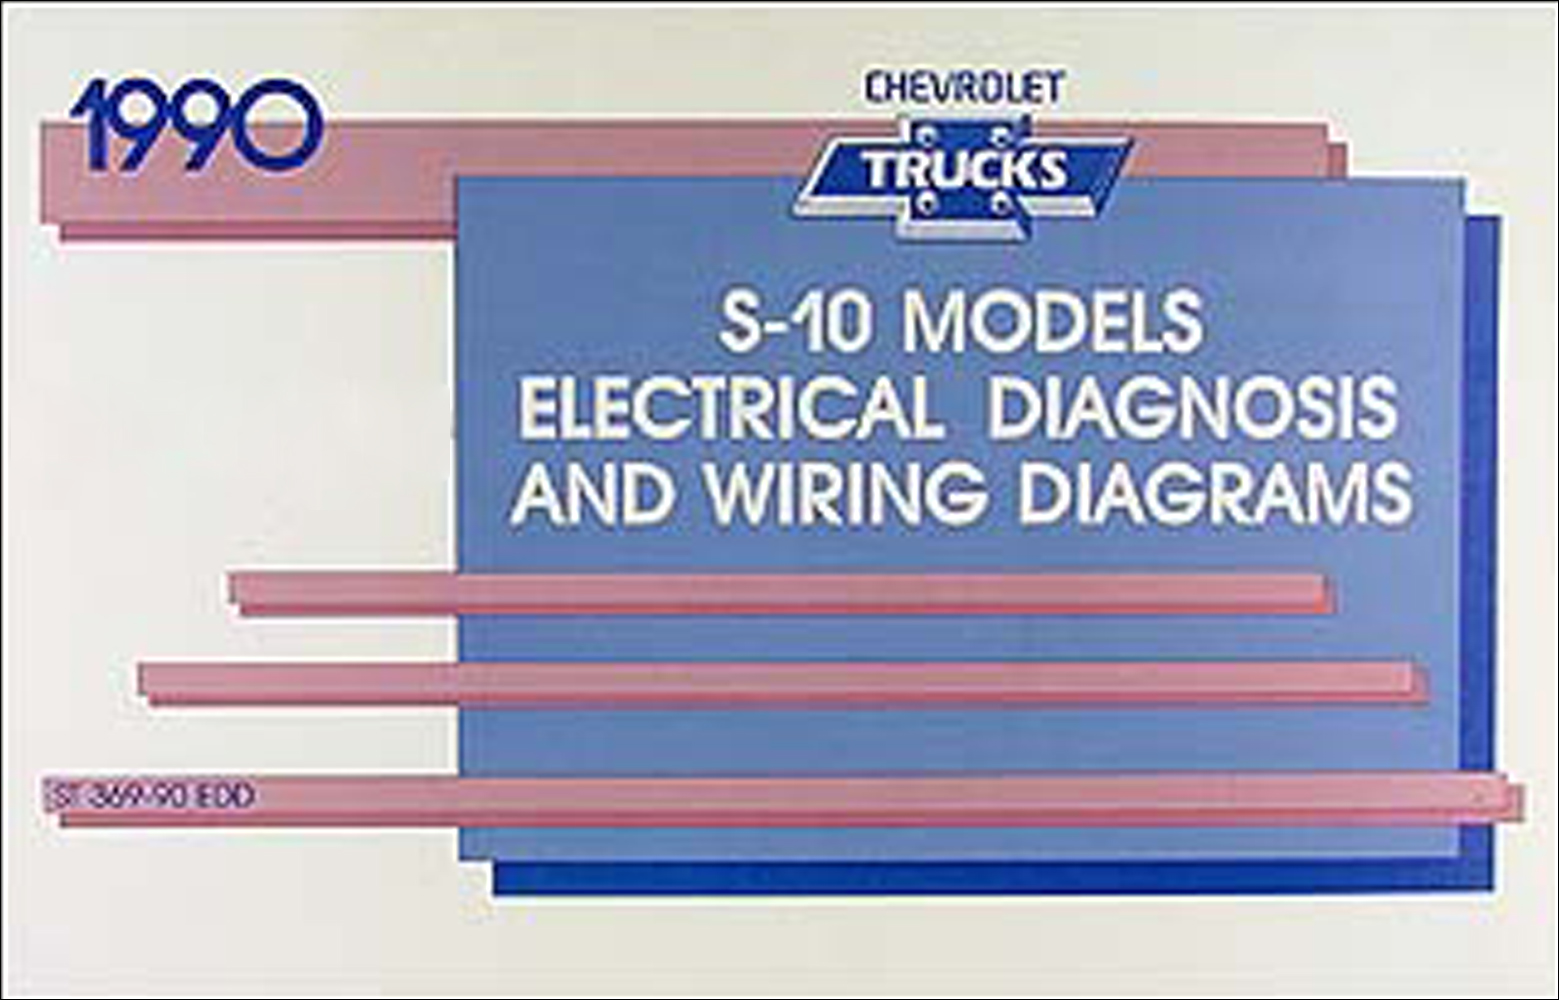 1990 Chevy S-10 Pickup & Blazer Wiring Diagram Manual Original